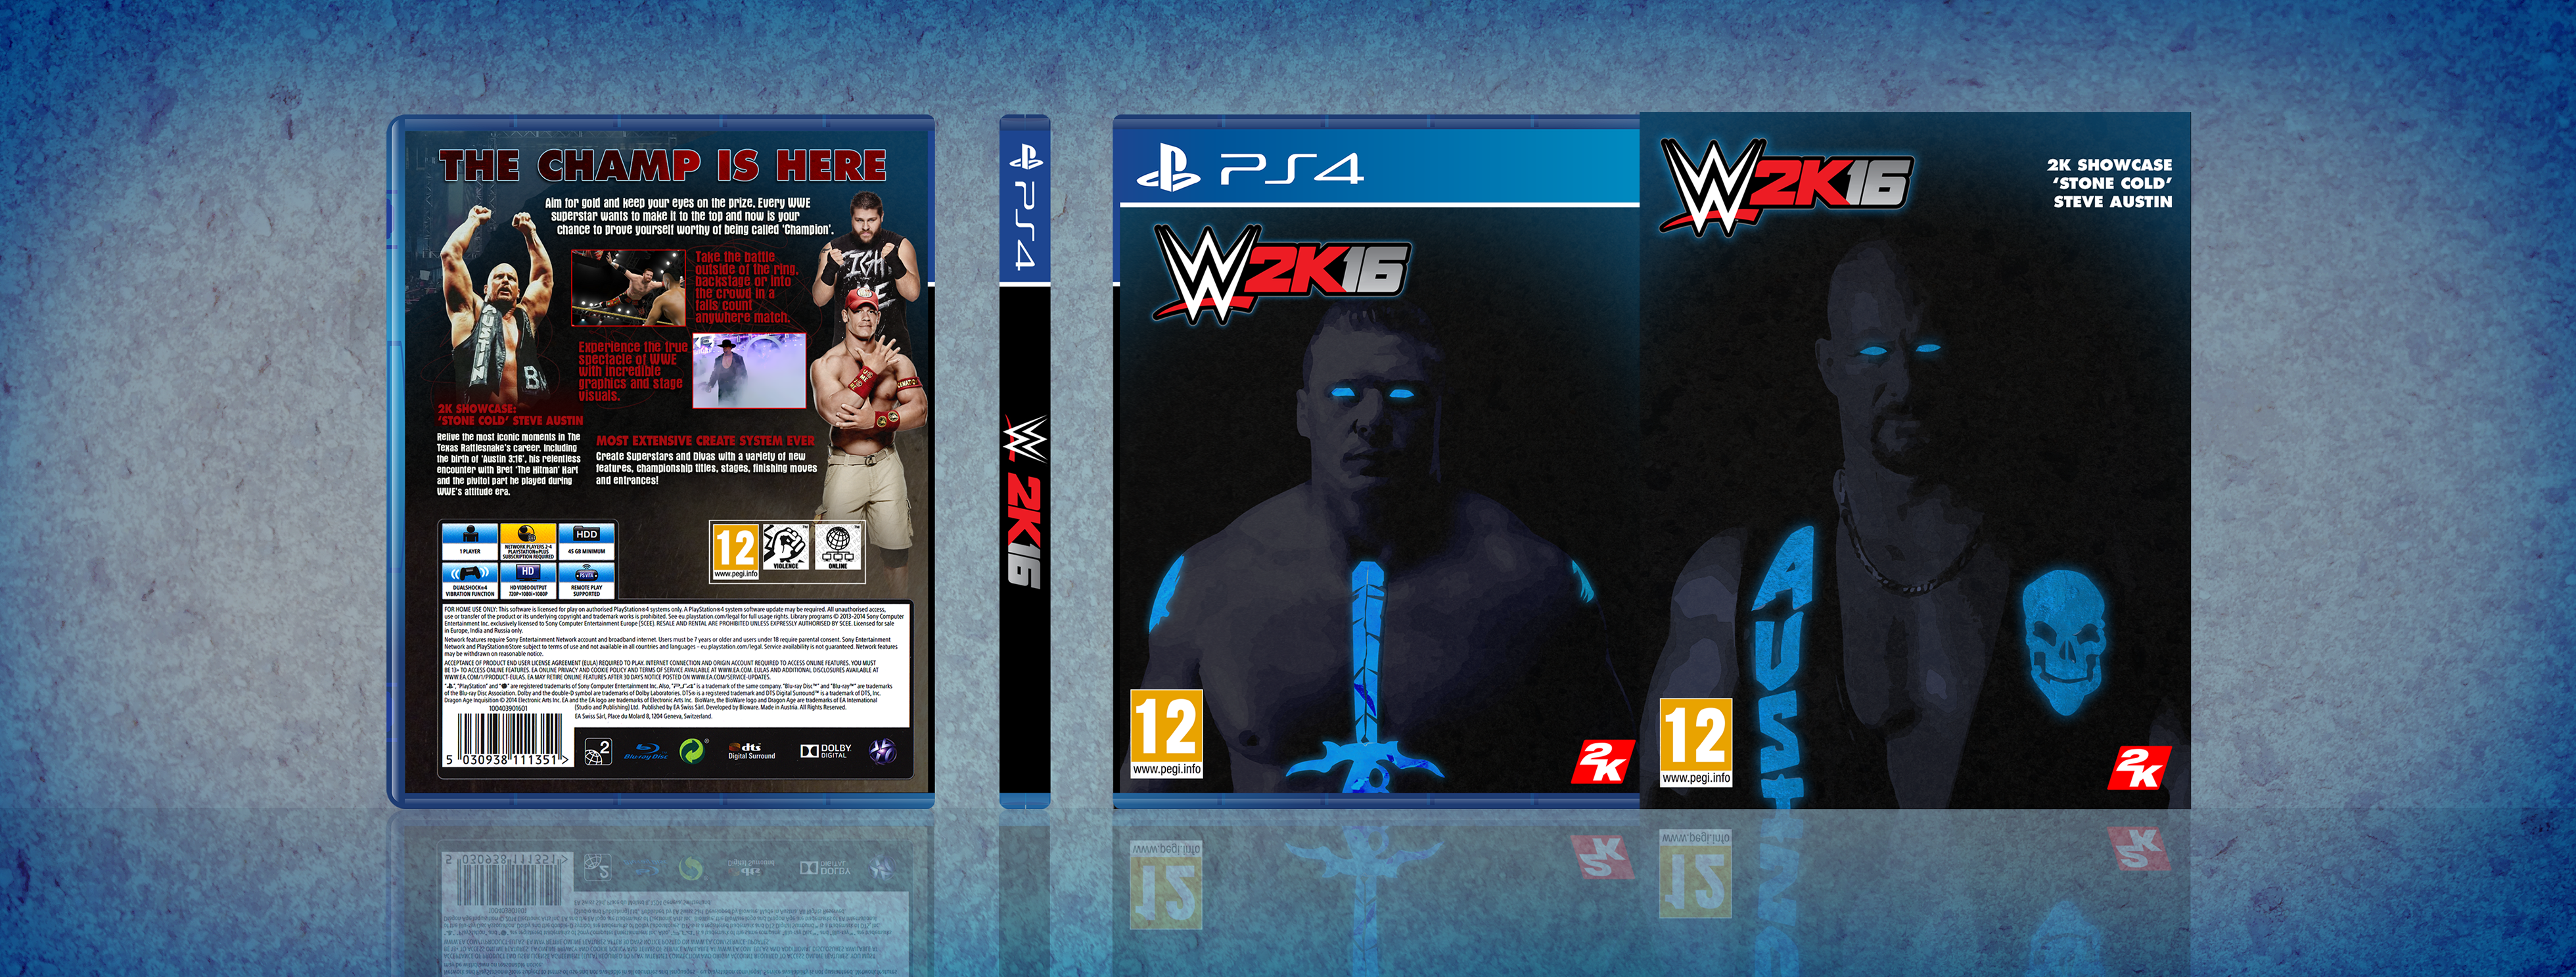 wwe 2k16 playstation 4 box art cover by legend chronicles2